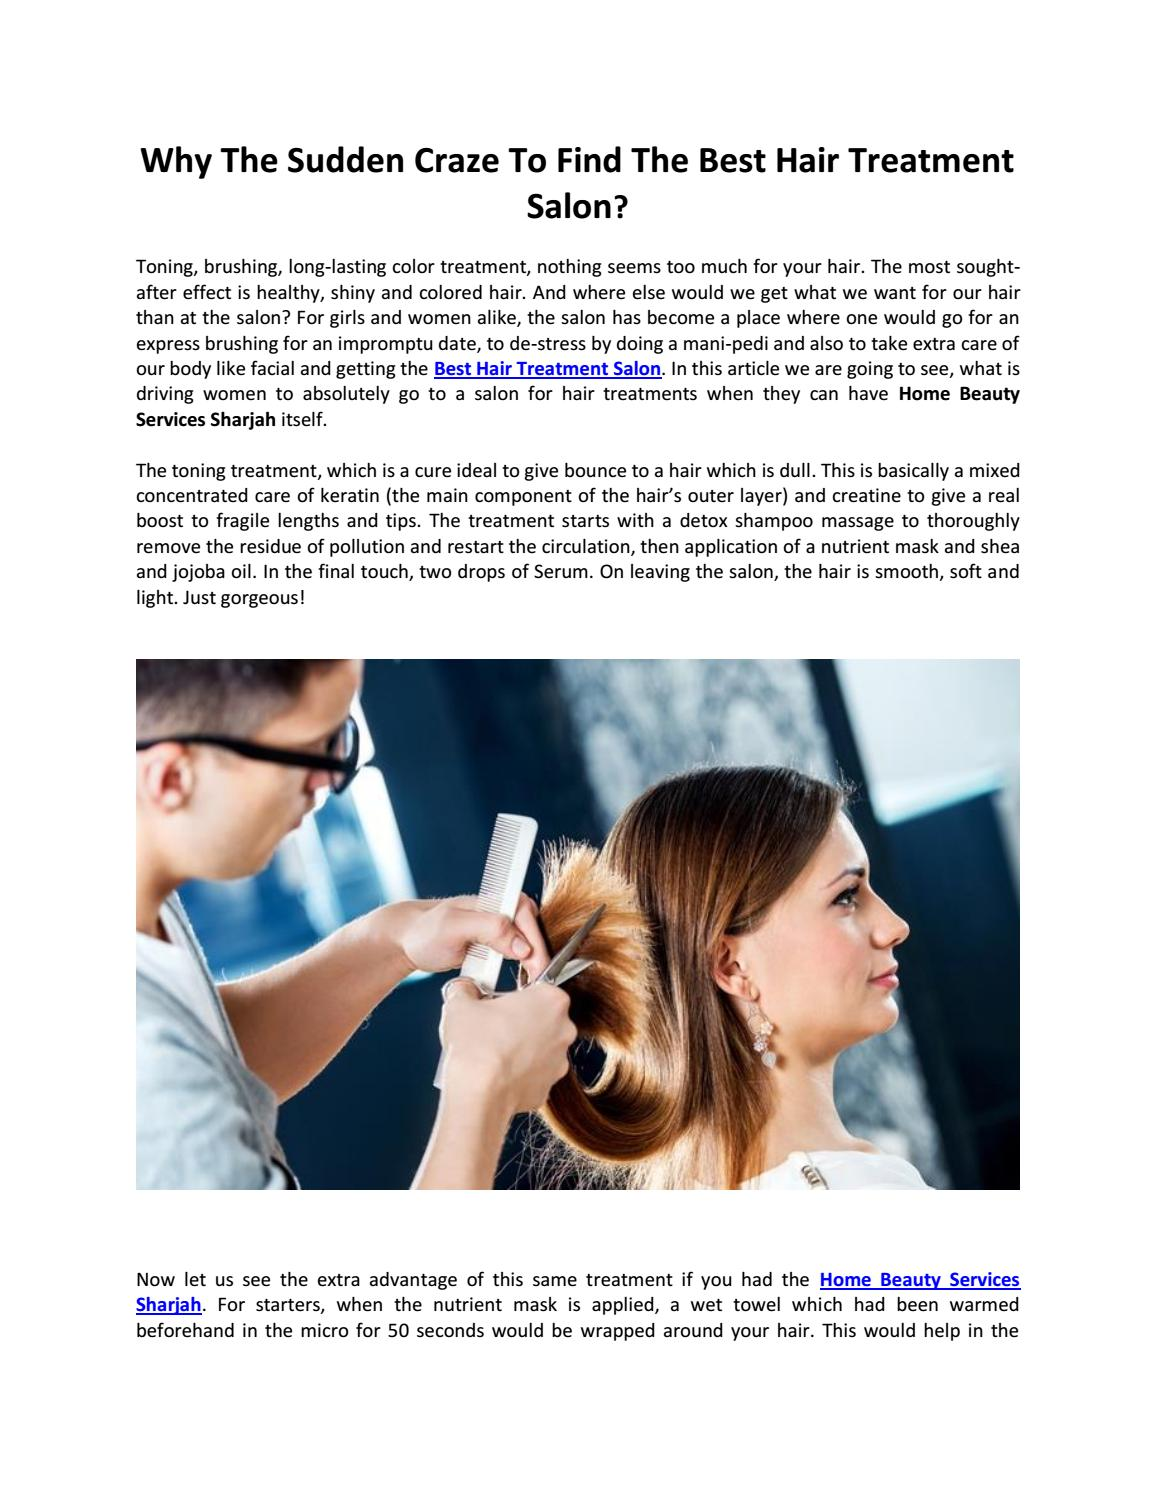 Why the sudden craze to find the best hair treatment salon